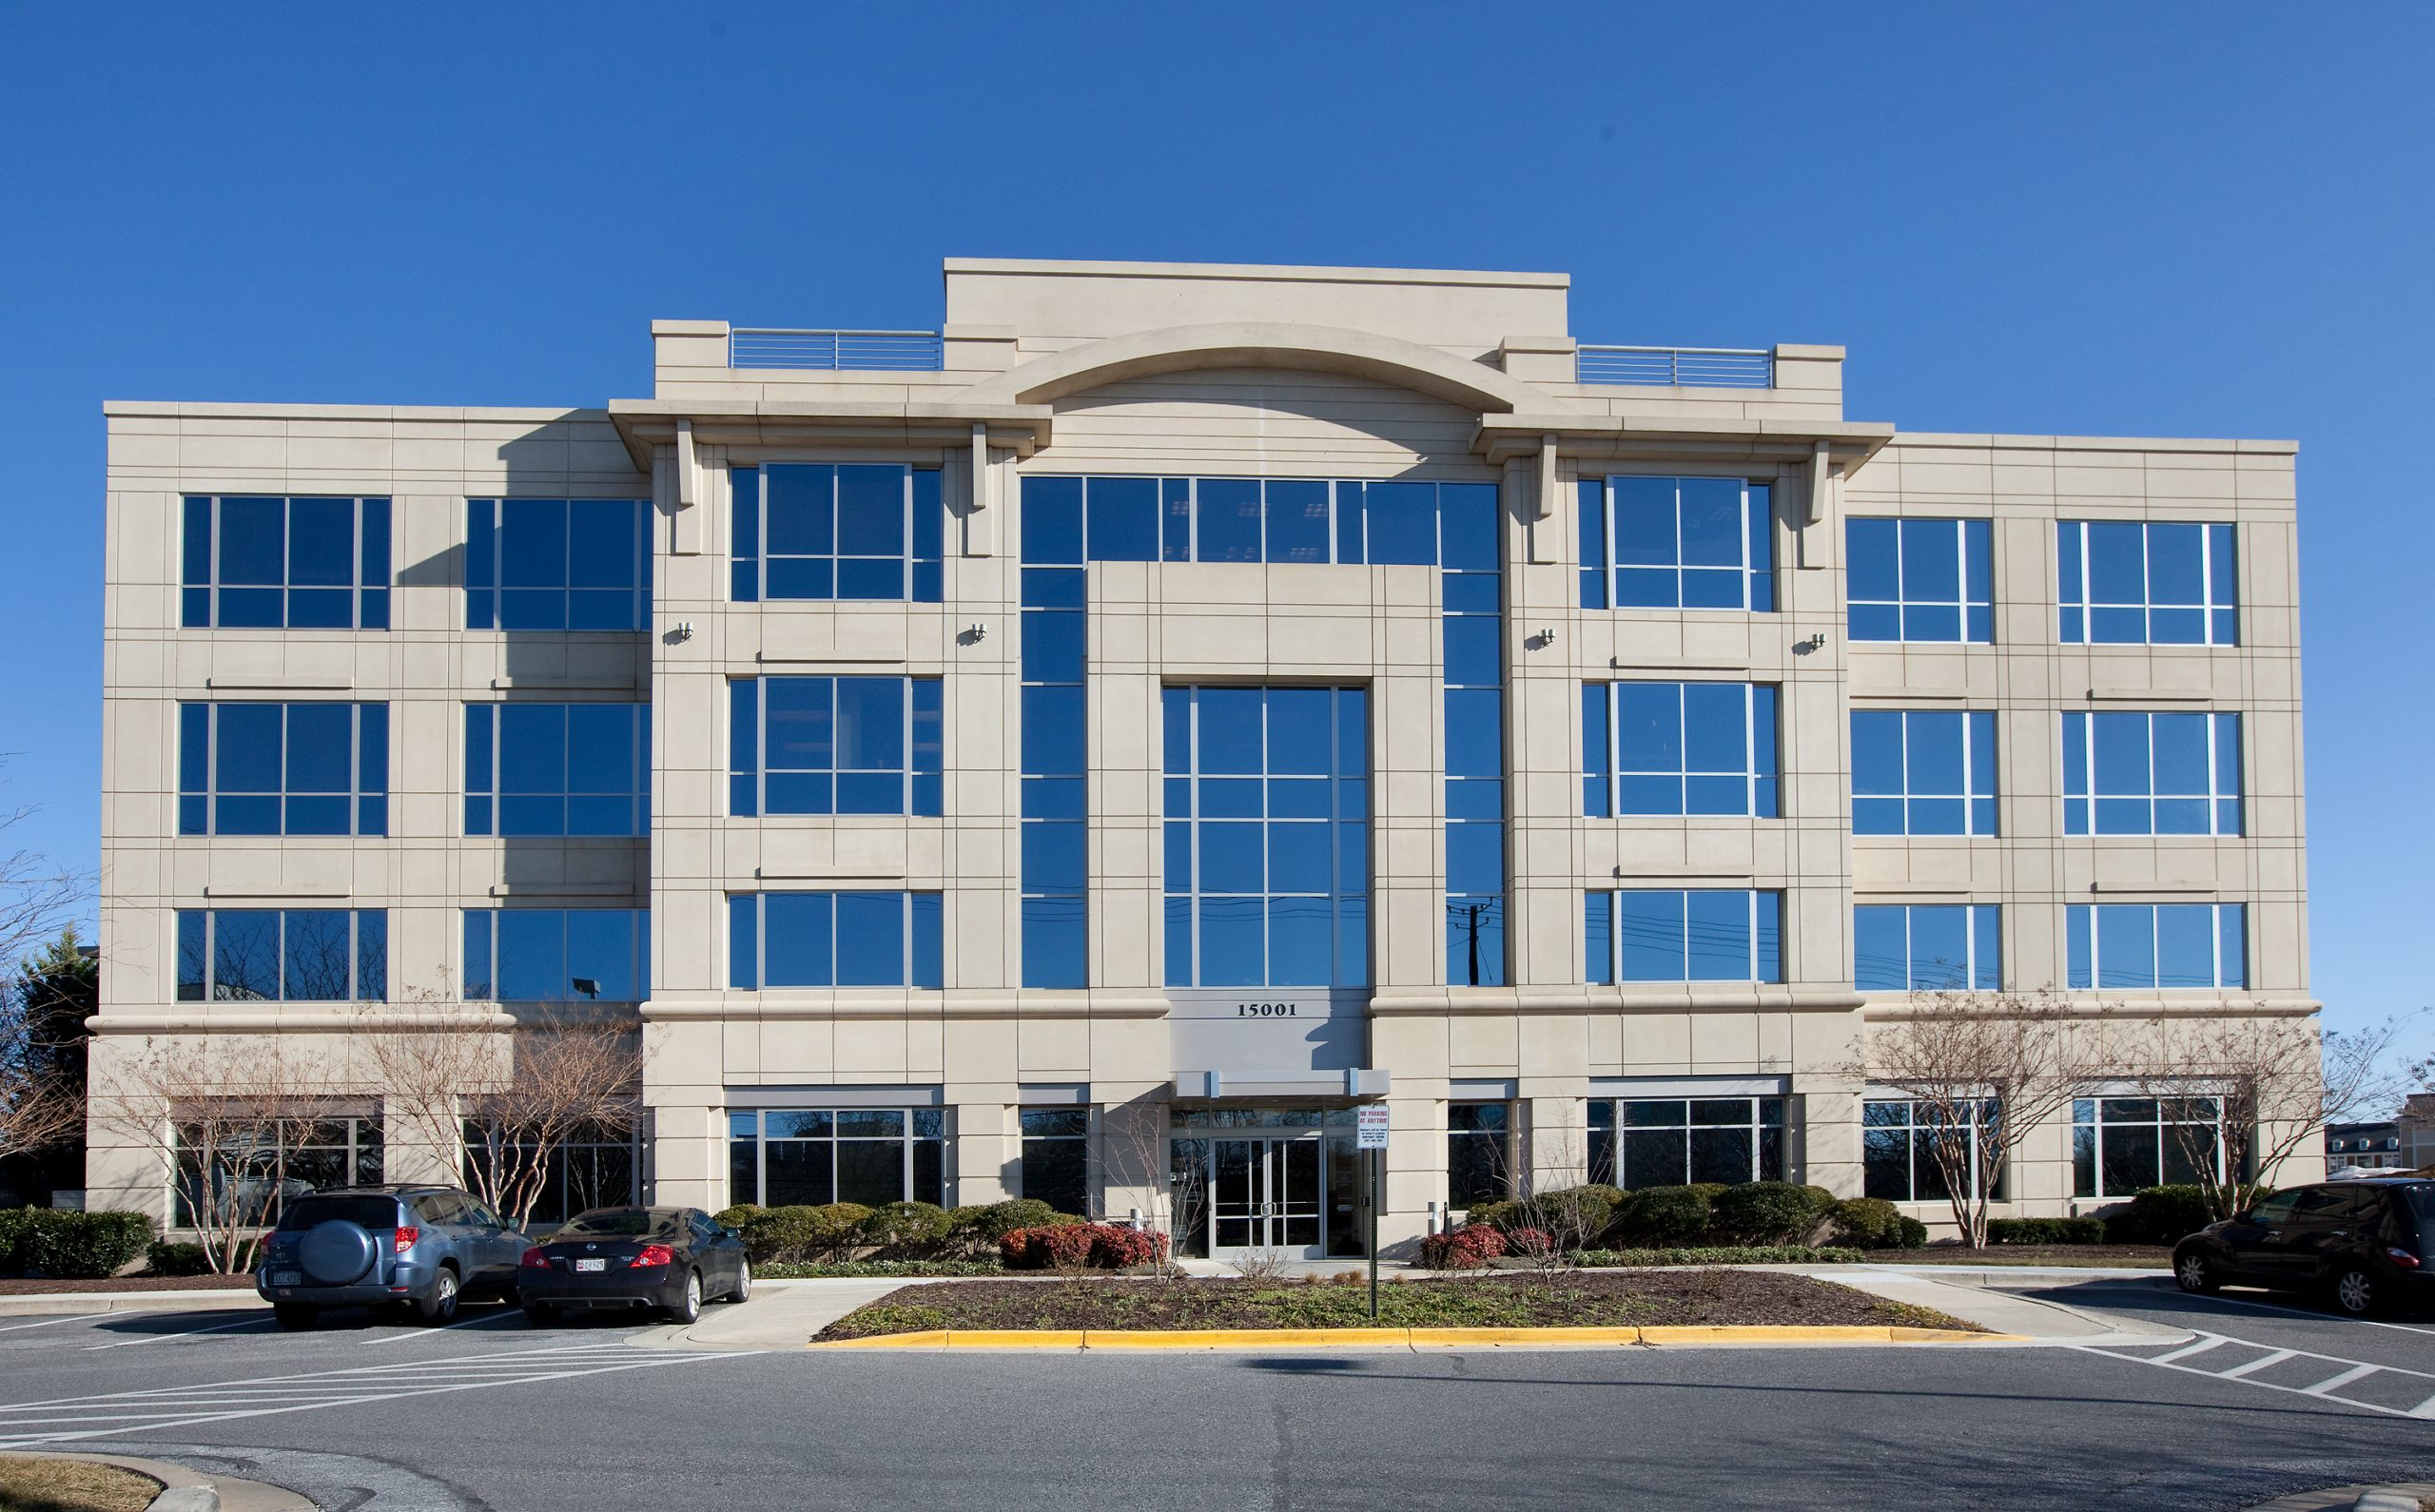 15001 Shady Grove Road<br>Suite 300<br>Rockville, MD 20850